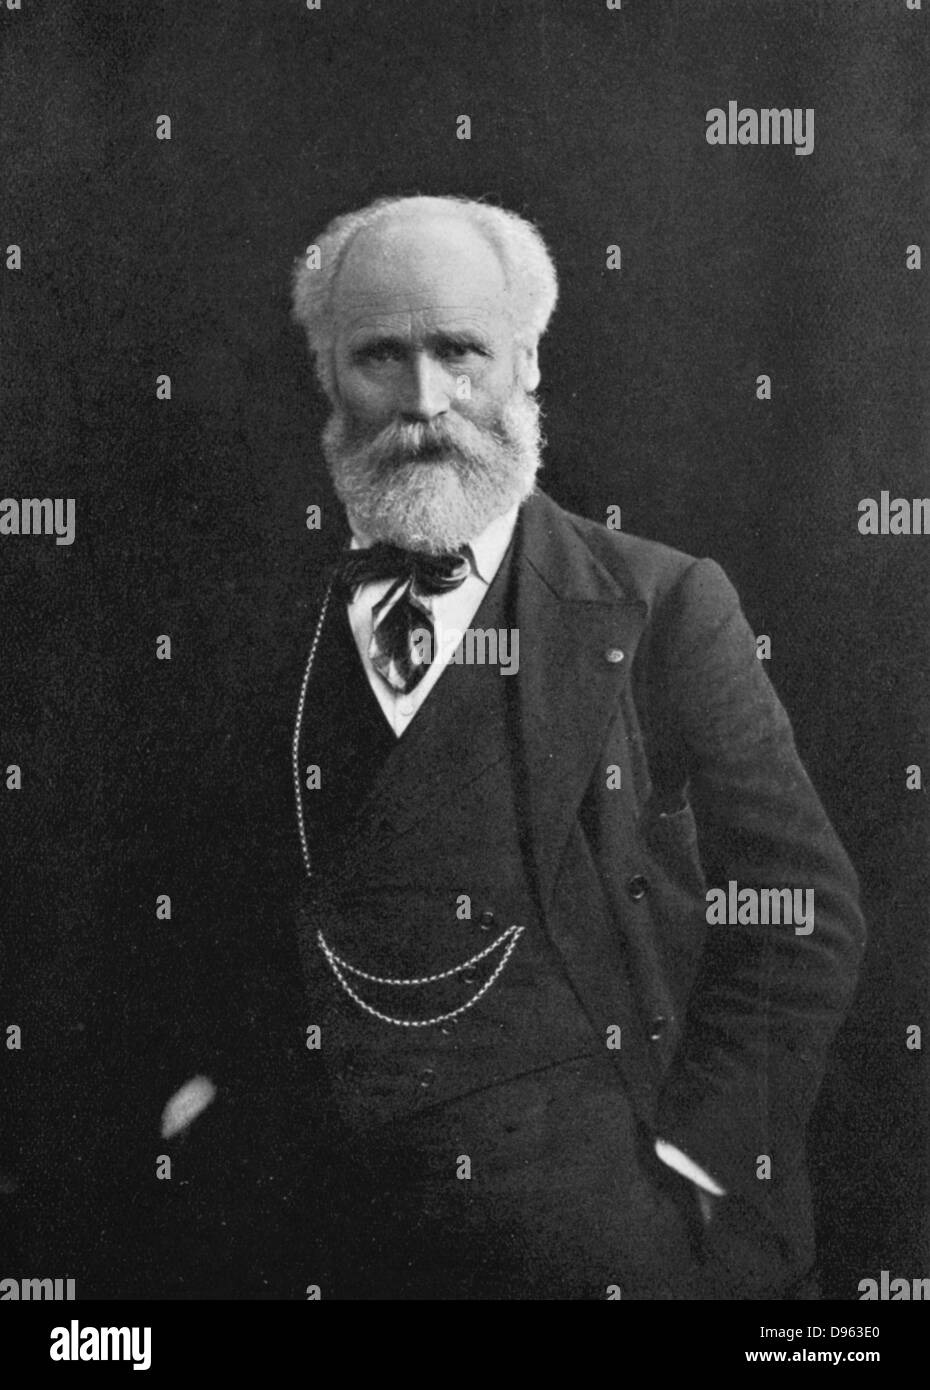 (James) Kier Hardie (1856-1915) Scottish-born British Labour leader, a founder of the Labour Party. - Stock Image